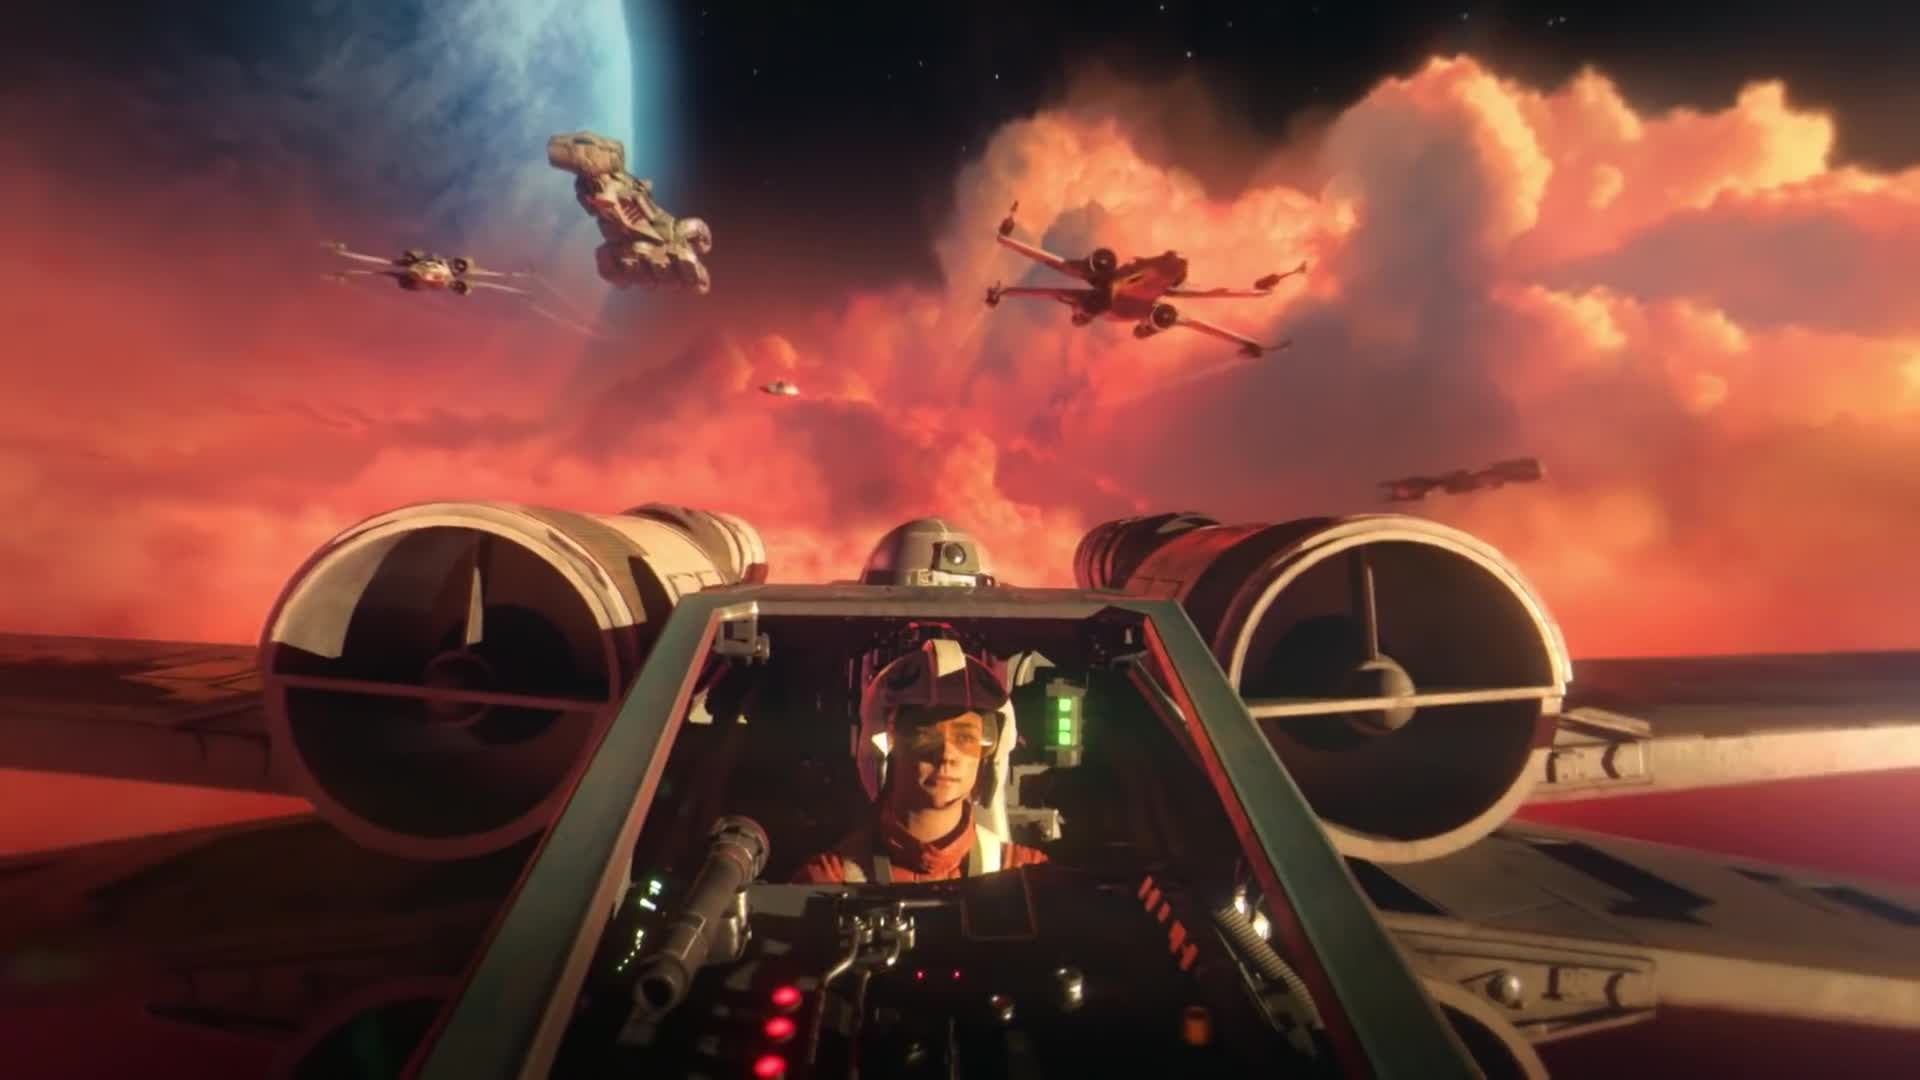 Trailer, Electronic Arts, Ea, Star Wars, Simulation, Weltraumsimulation, Star Wars Squadrons